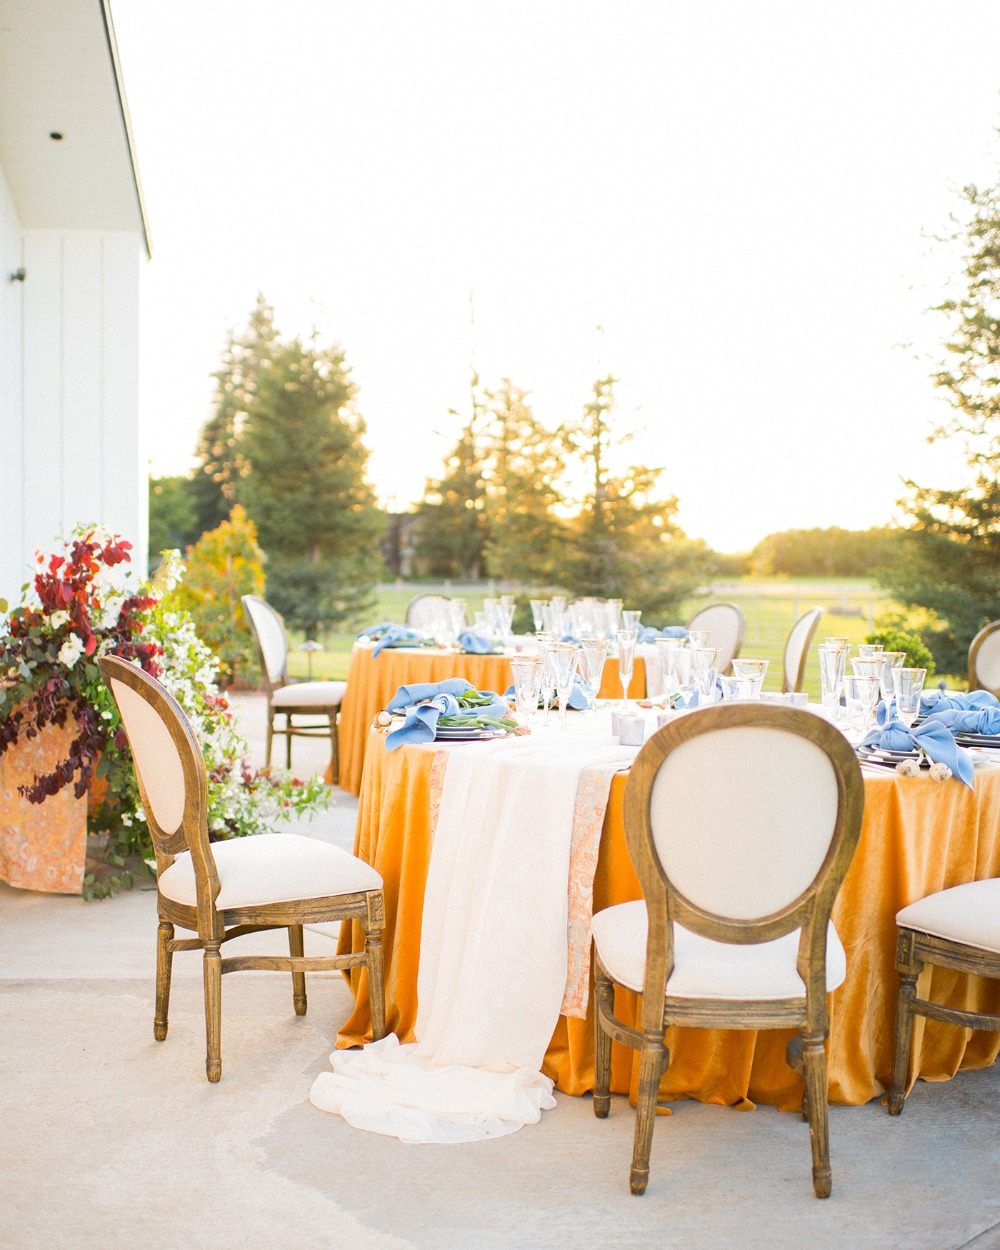 outdoor wedding reception with a chic rustic vibe